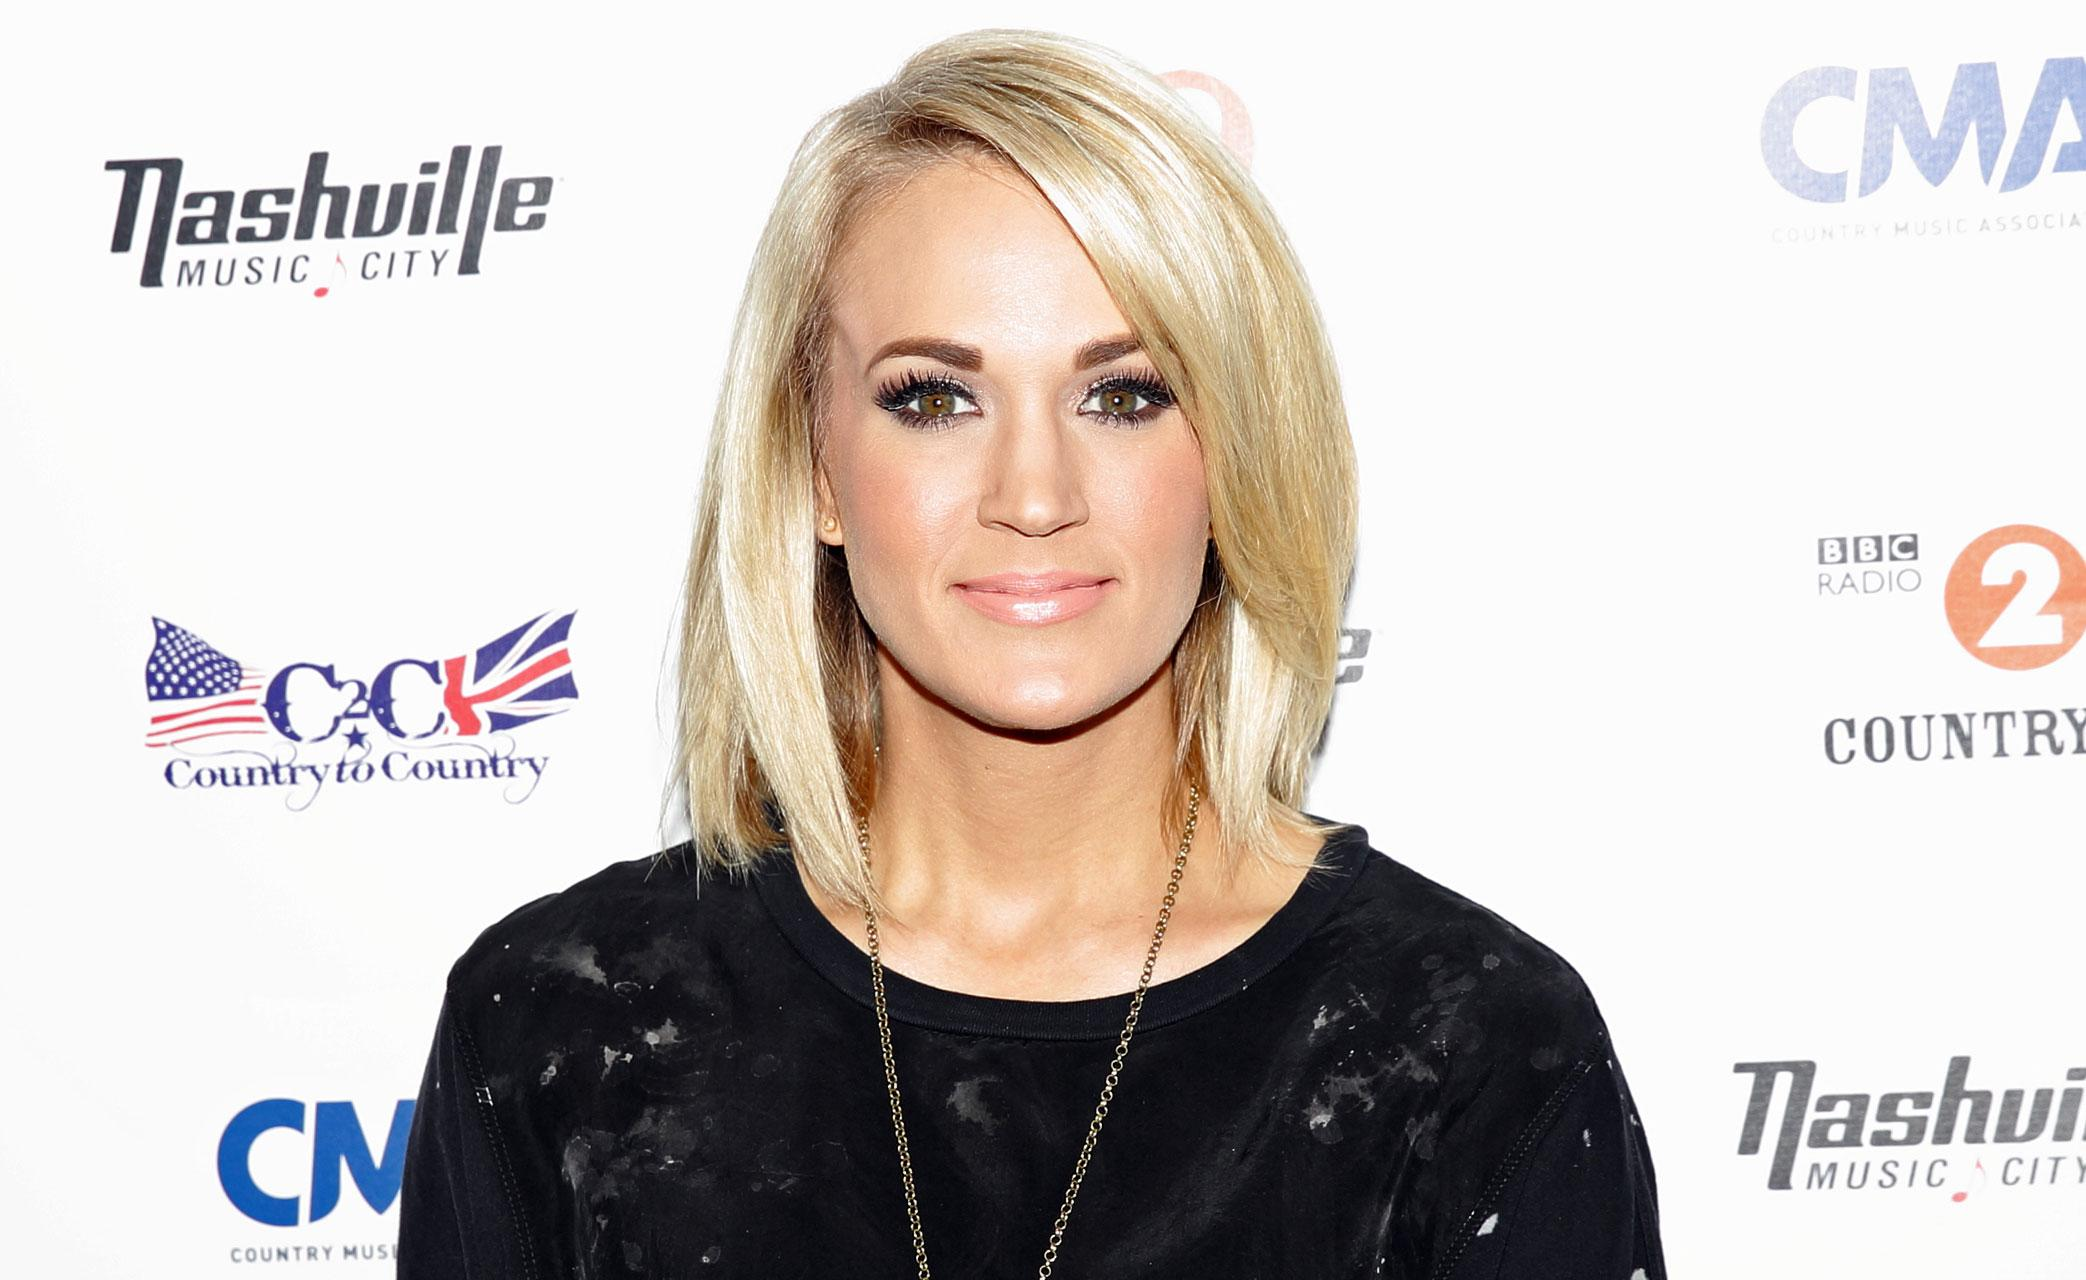 carrie underwood embraces her bob: 'cutting my hair was a